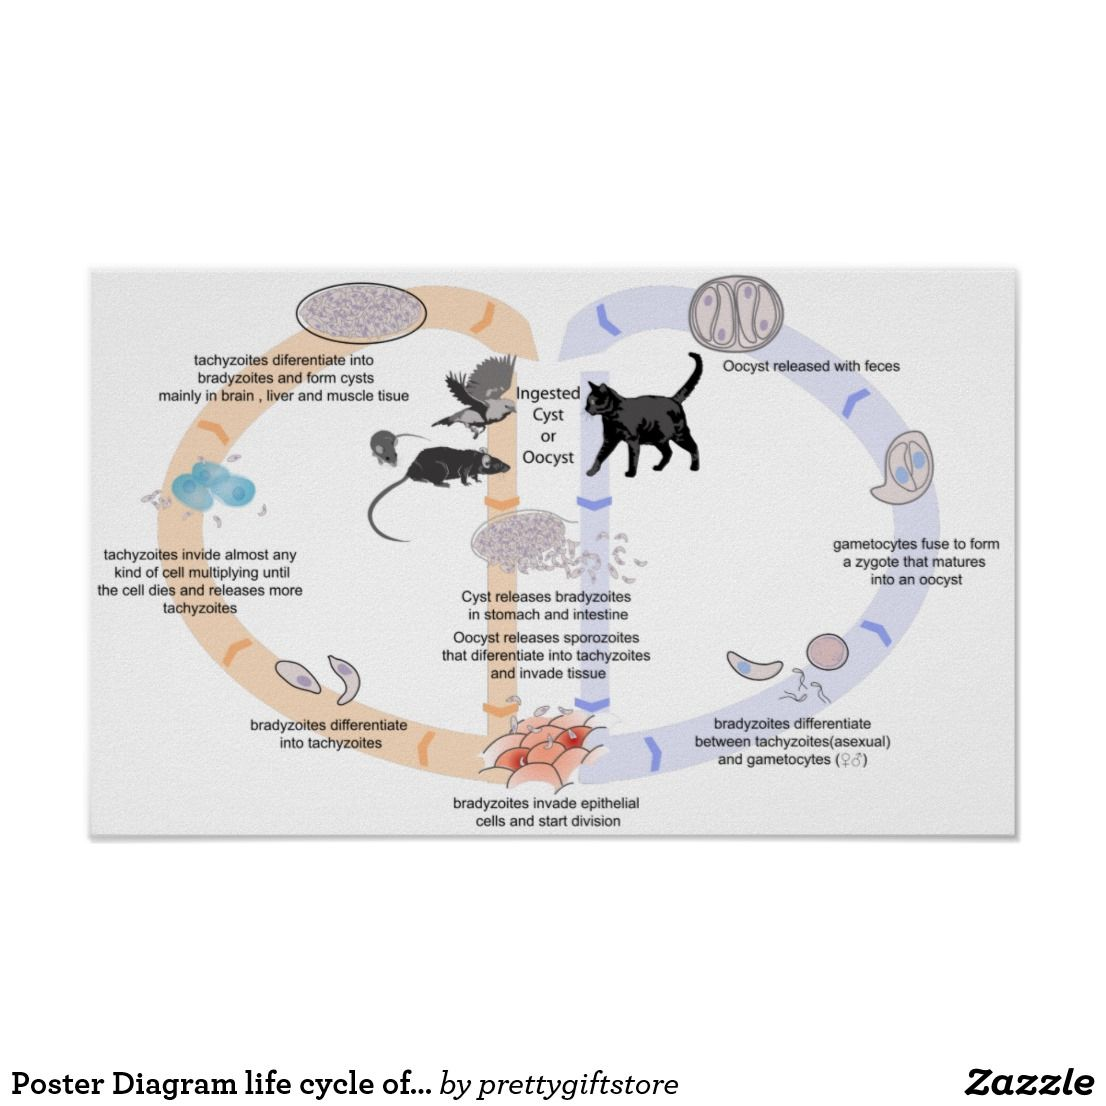 poster diagram life cycle of toxoplasma gondii